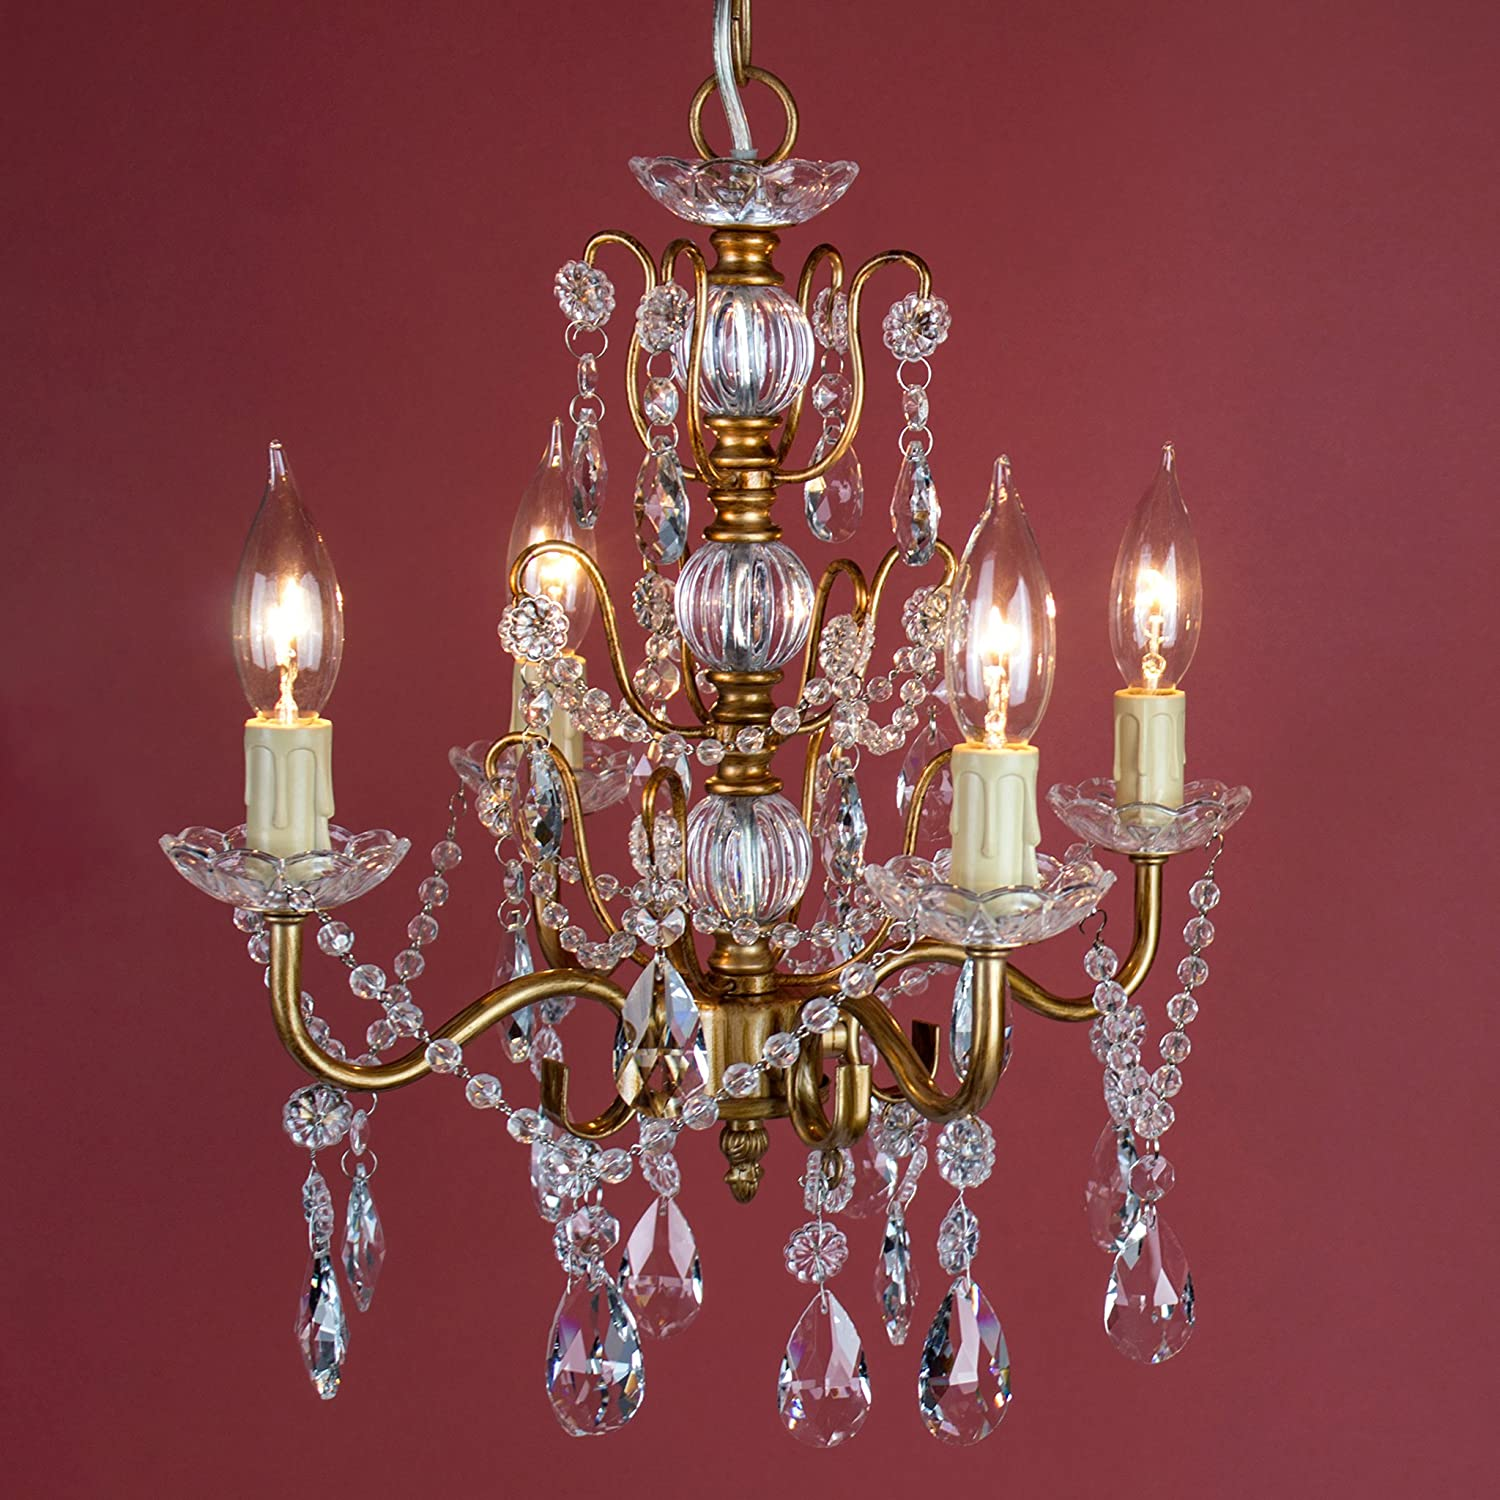 Mini Swag Plug-In Glass Pendant 4 Light Wrought Iron Ceiling Lighting Fixture Lamp Madeleine White Crystal Chandelier